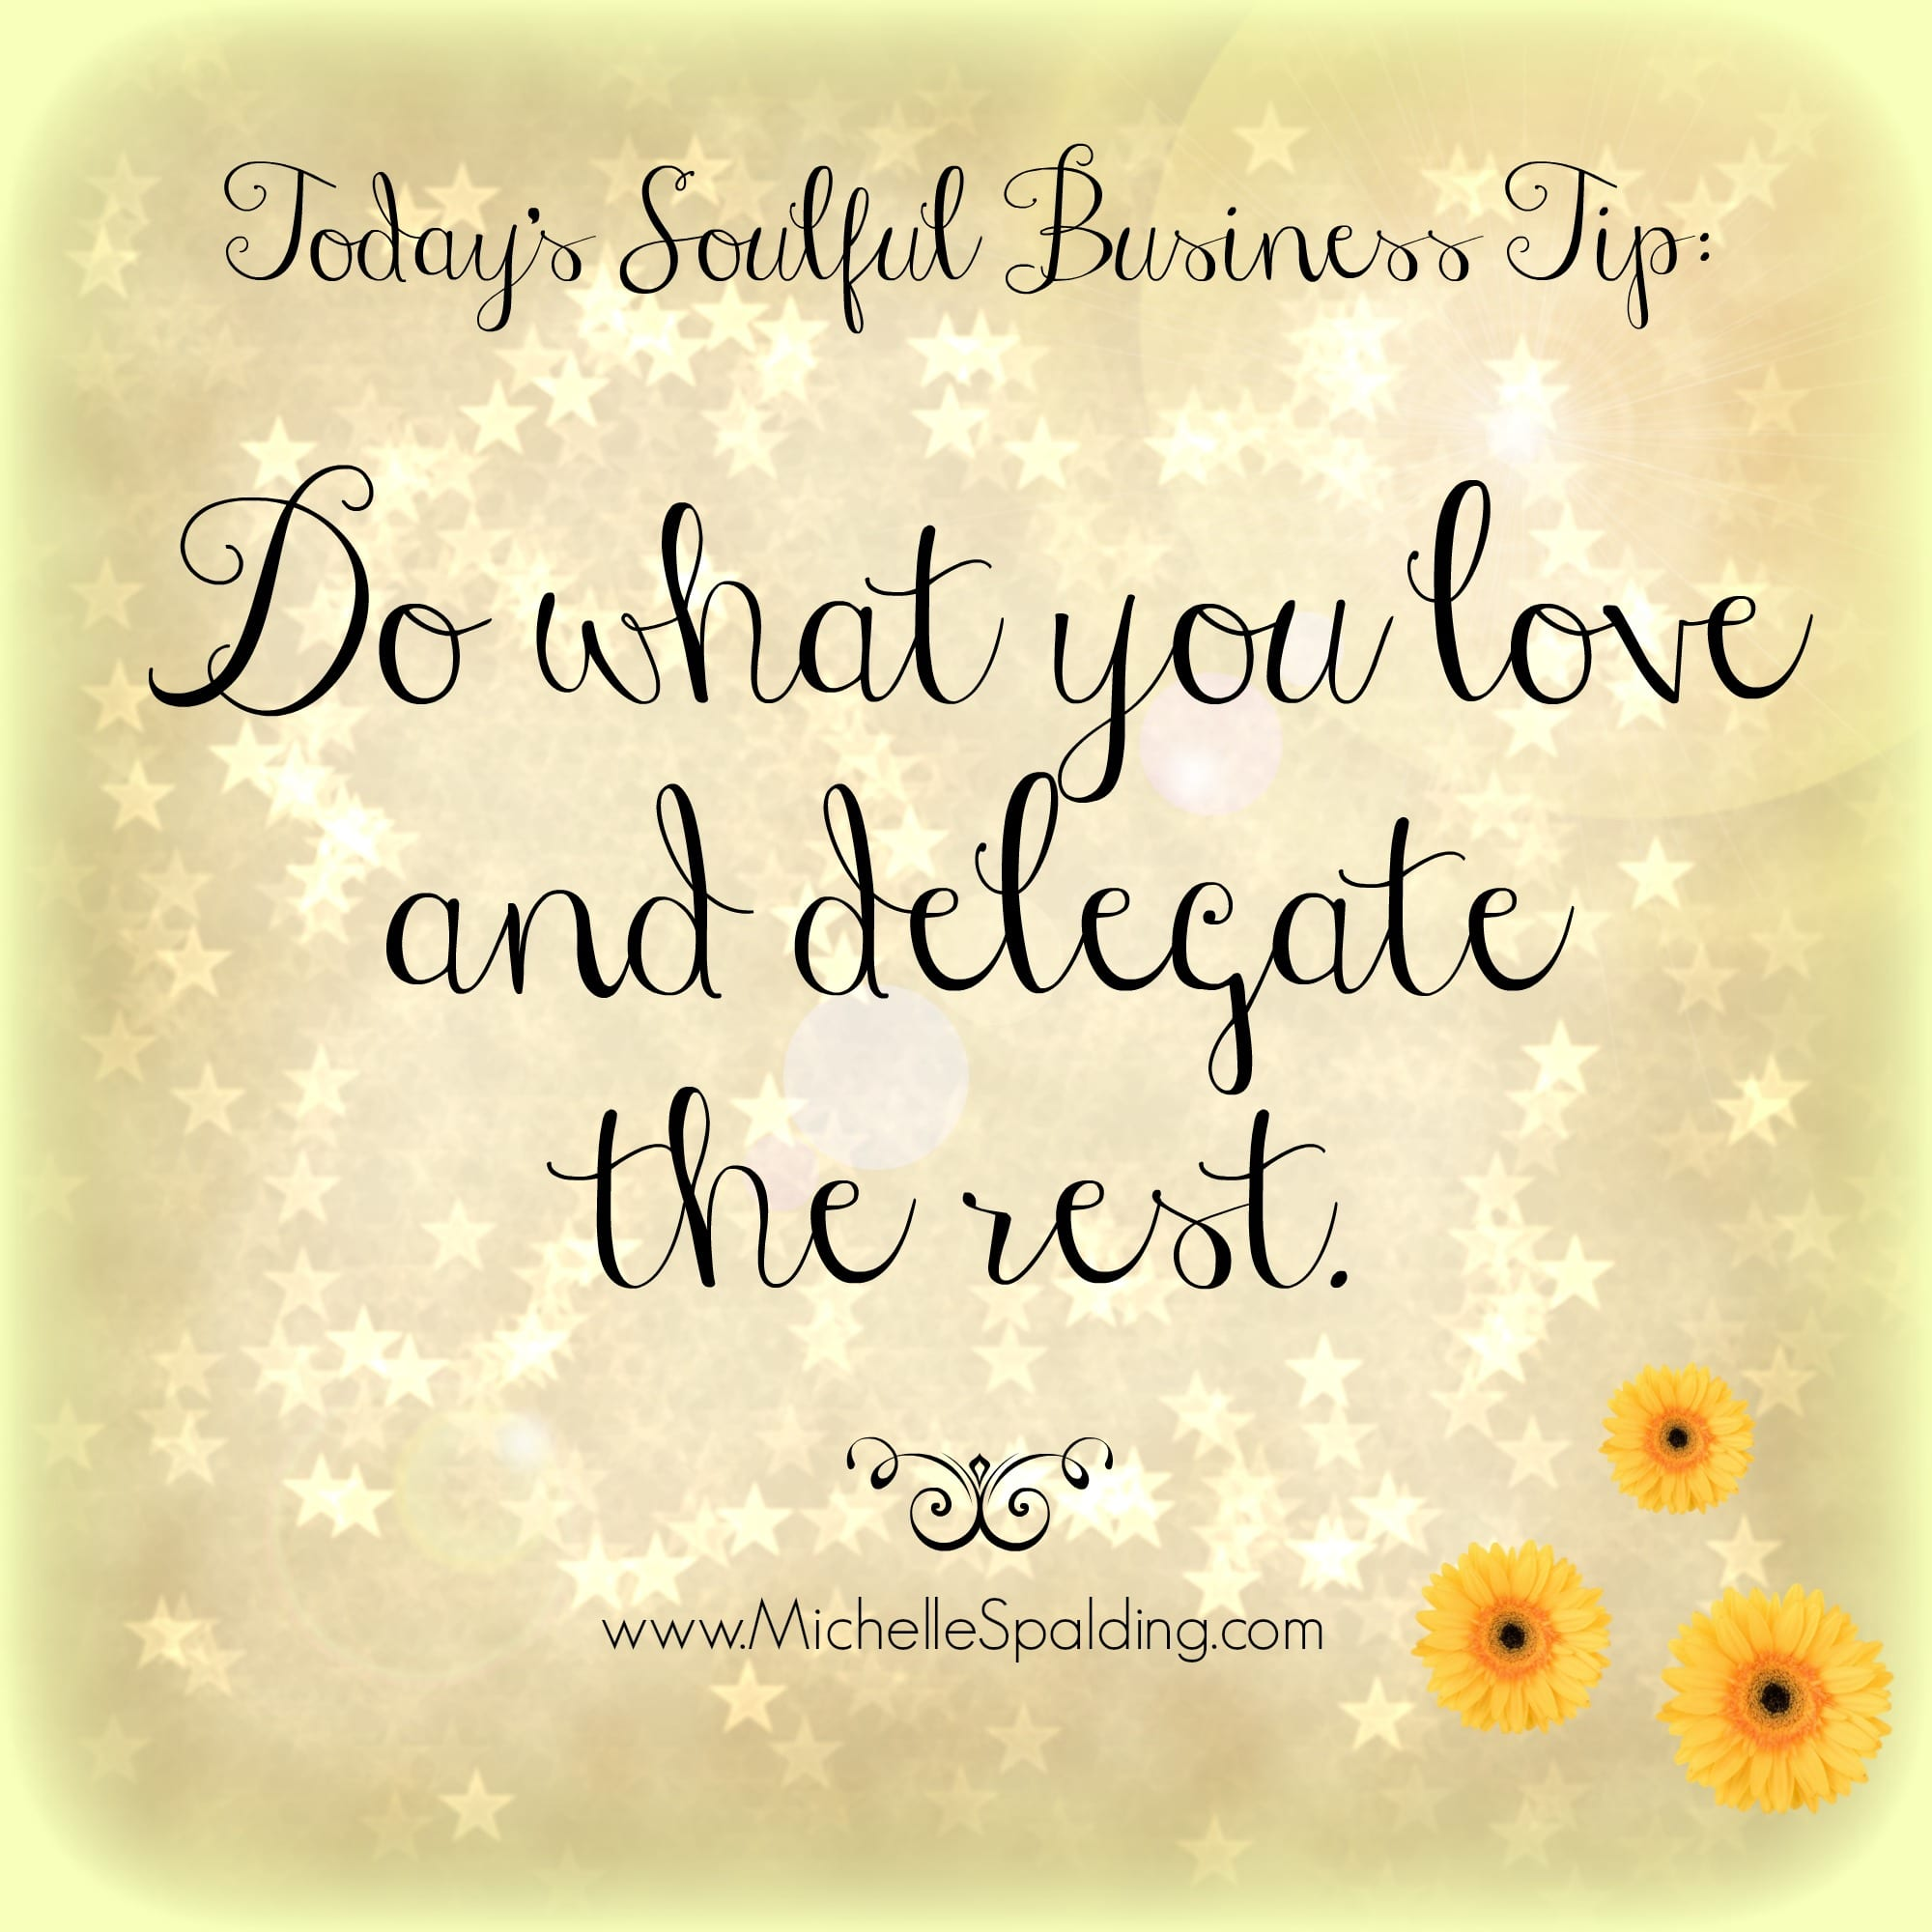 Do what you love and delegate the rest